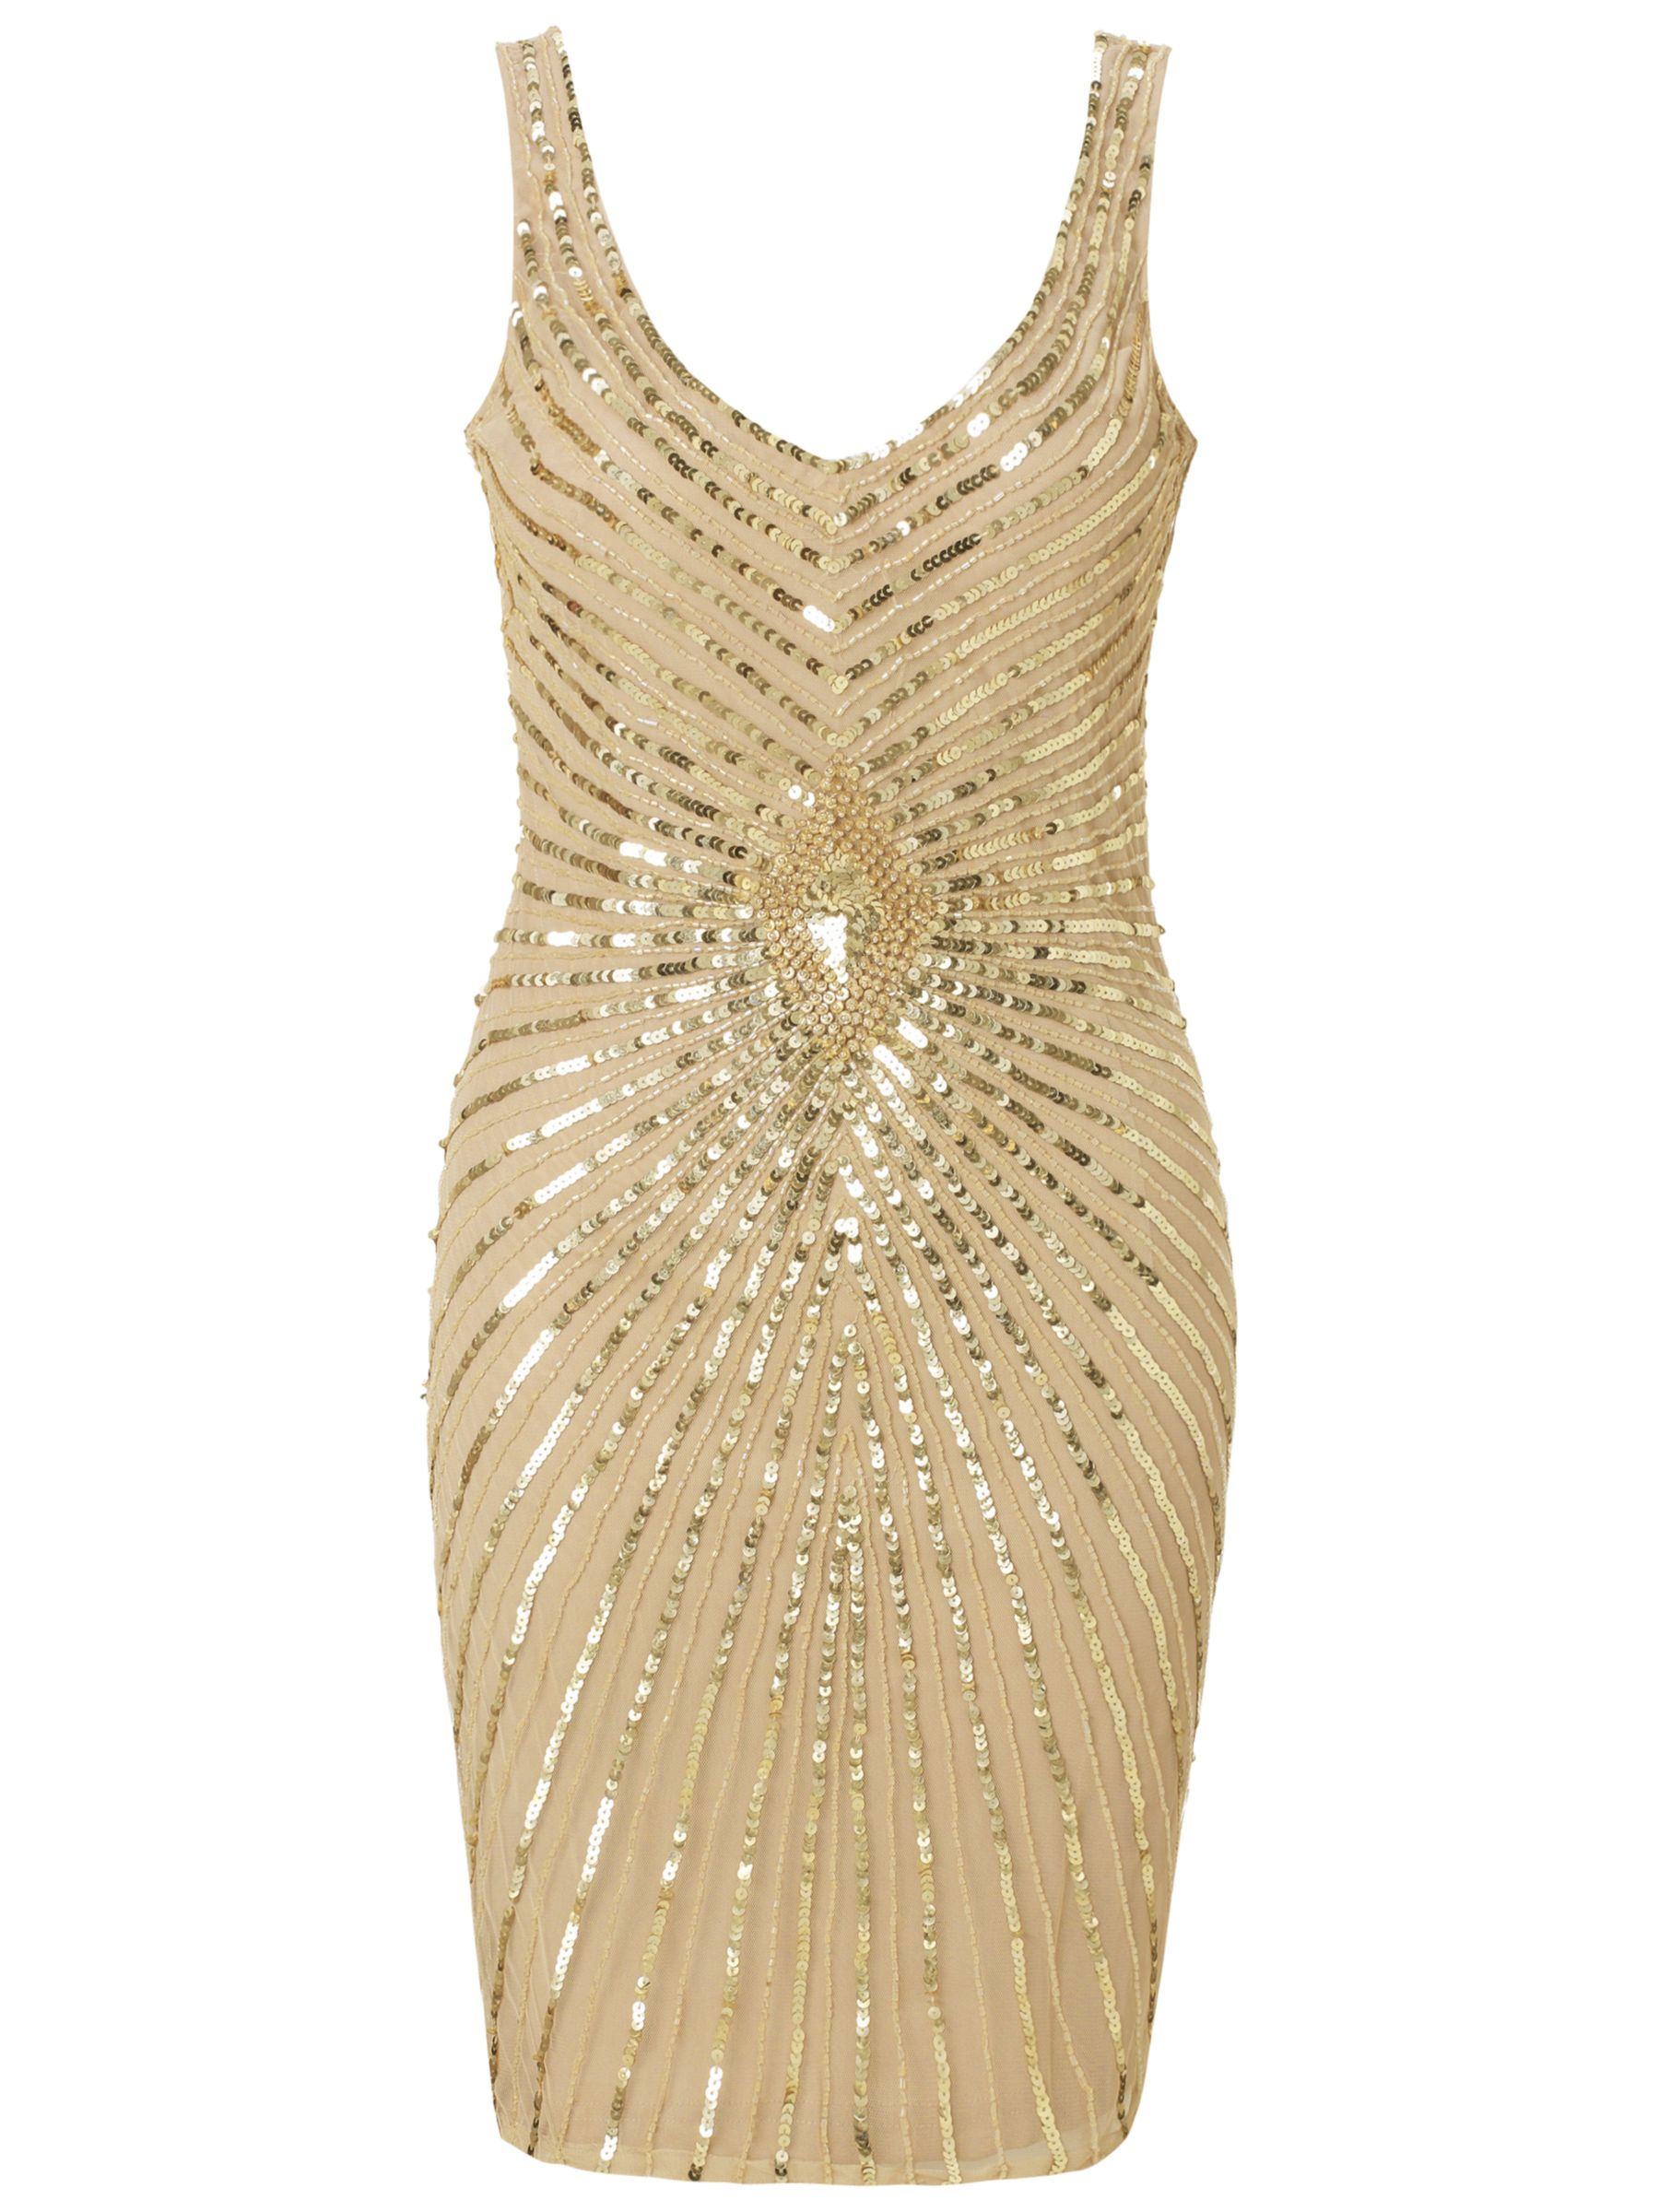 aidan mattox beaded tank cocktail dress champagne, aidan, mattox, beaded, tank, cocktail, dress, champagne, aidan mattox, 8|10|12|14|16|6, women, womens dresses, party outfits, party dresses, gifts, wedding, wedding clothing, female guests, adult bridesmaids, edition magazine, embellishment, 1807316